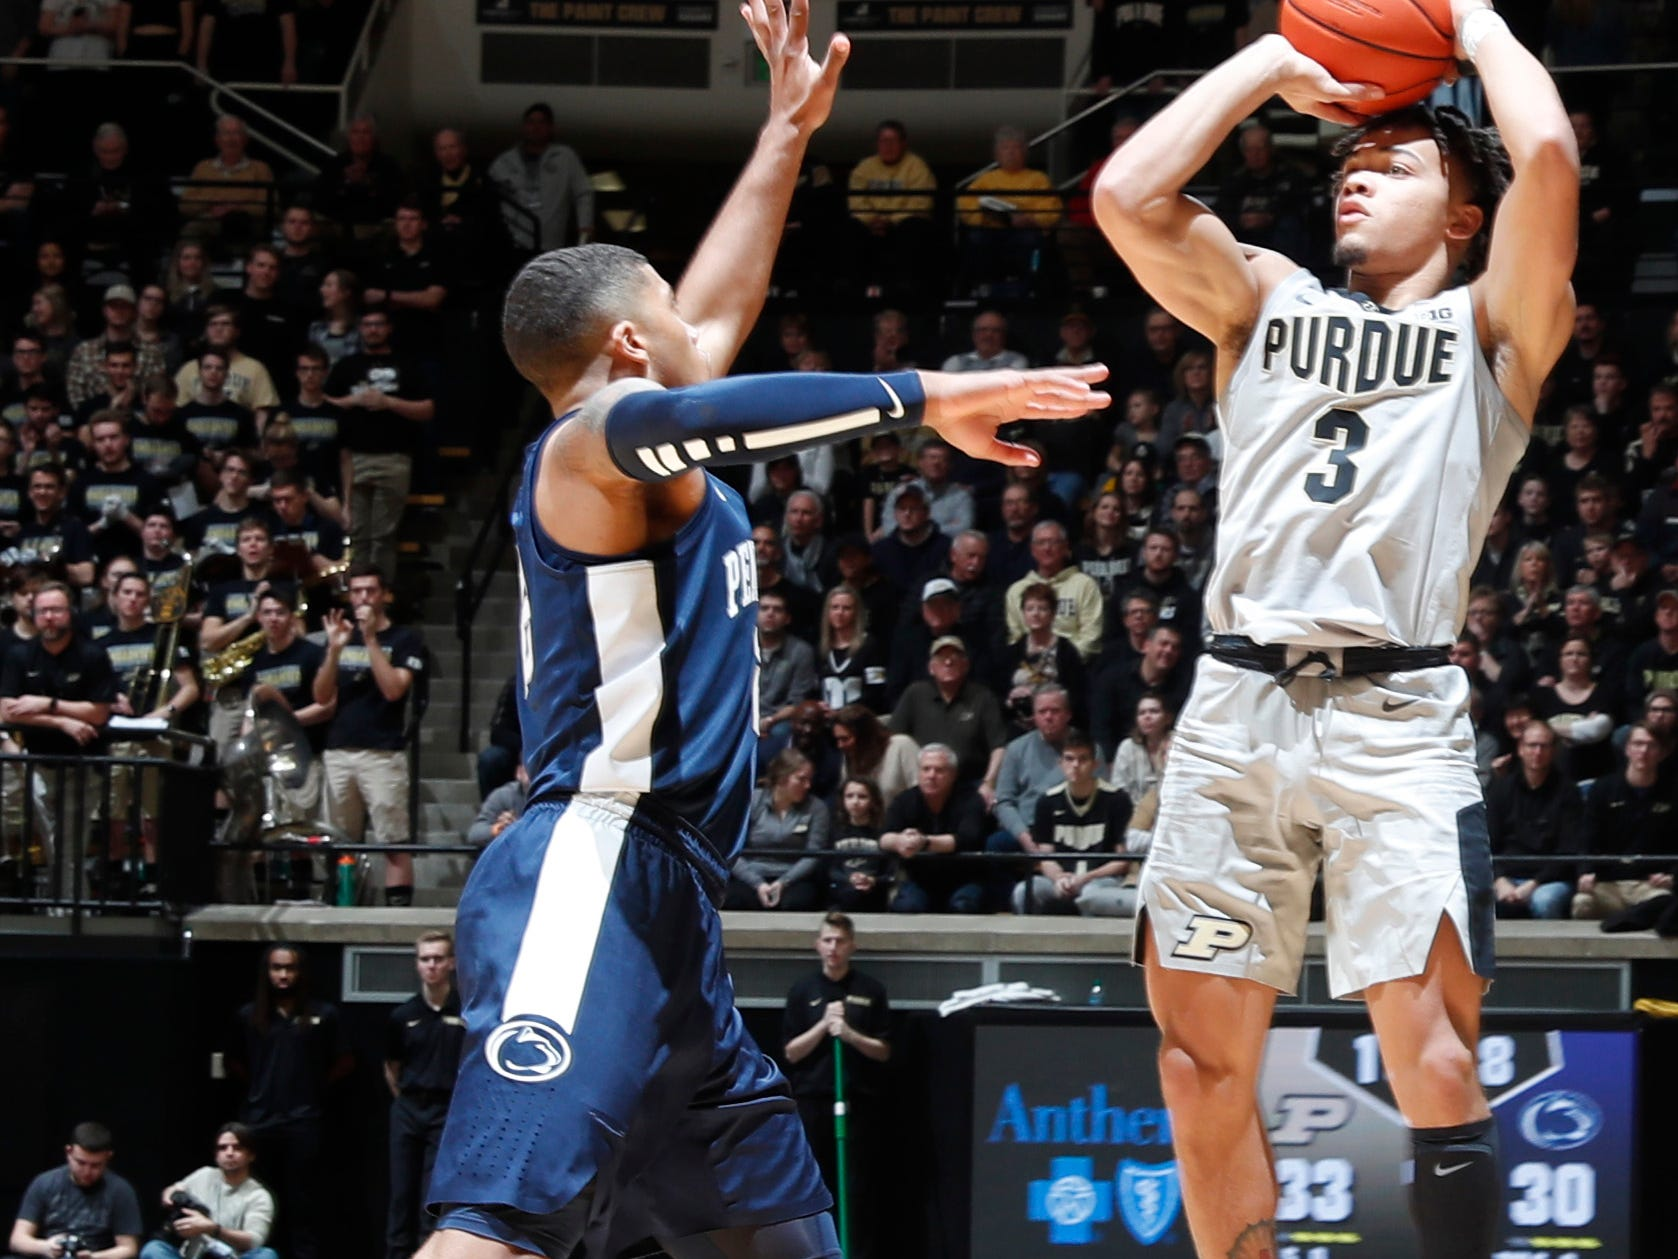 Purdue Boilermakers guard Carsen Edwards shoots a three pointer against the Penn State Nittany Lions during the second half at Mackey Arena.